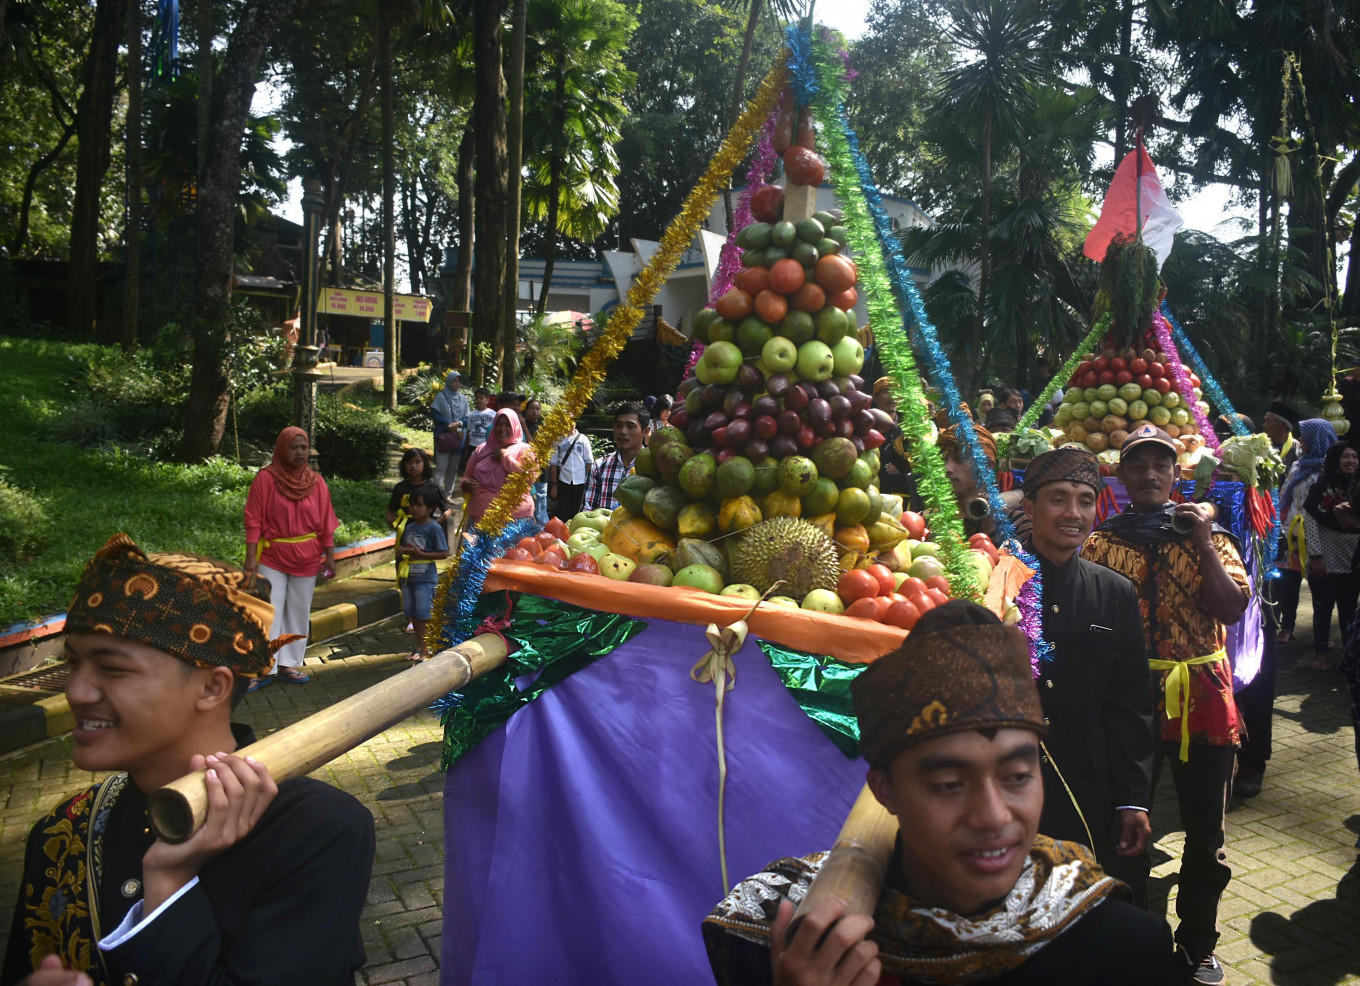 The offerings are paraded by the participants.